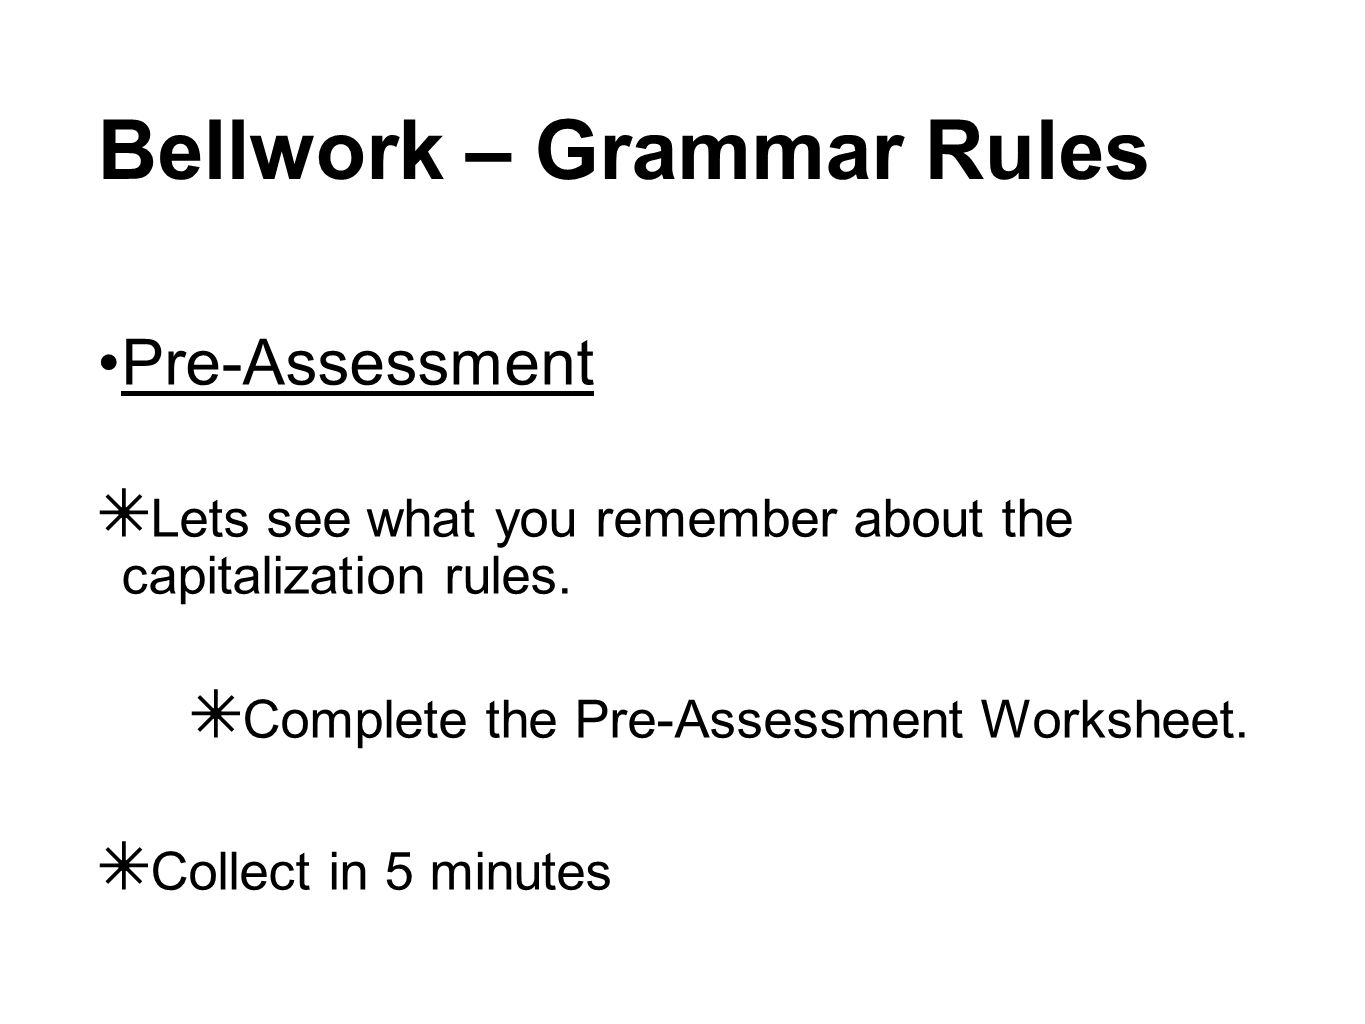 Bellwork grammar rules bellwork grammar rules pre assessment bellwork grammar rules pre assessment lets see what you remember about the capitalization robcynllc Choice Image